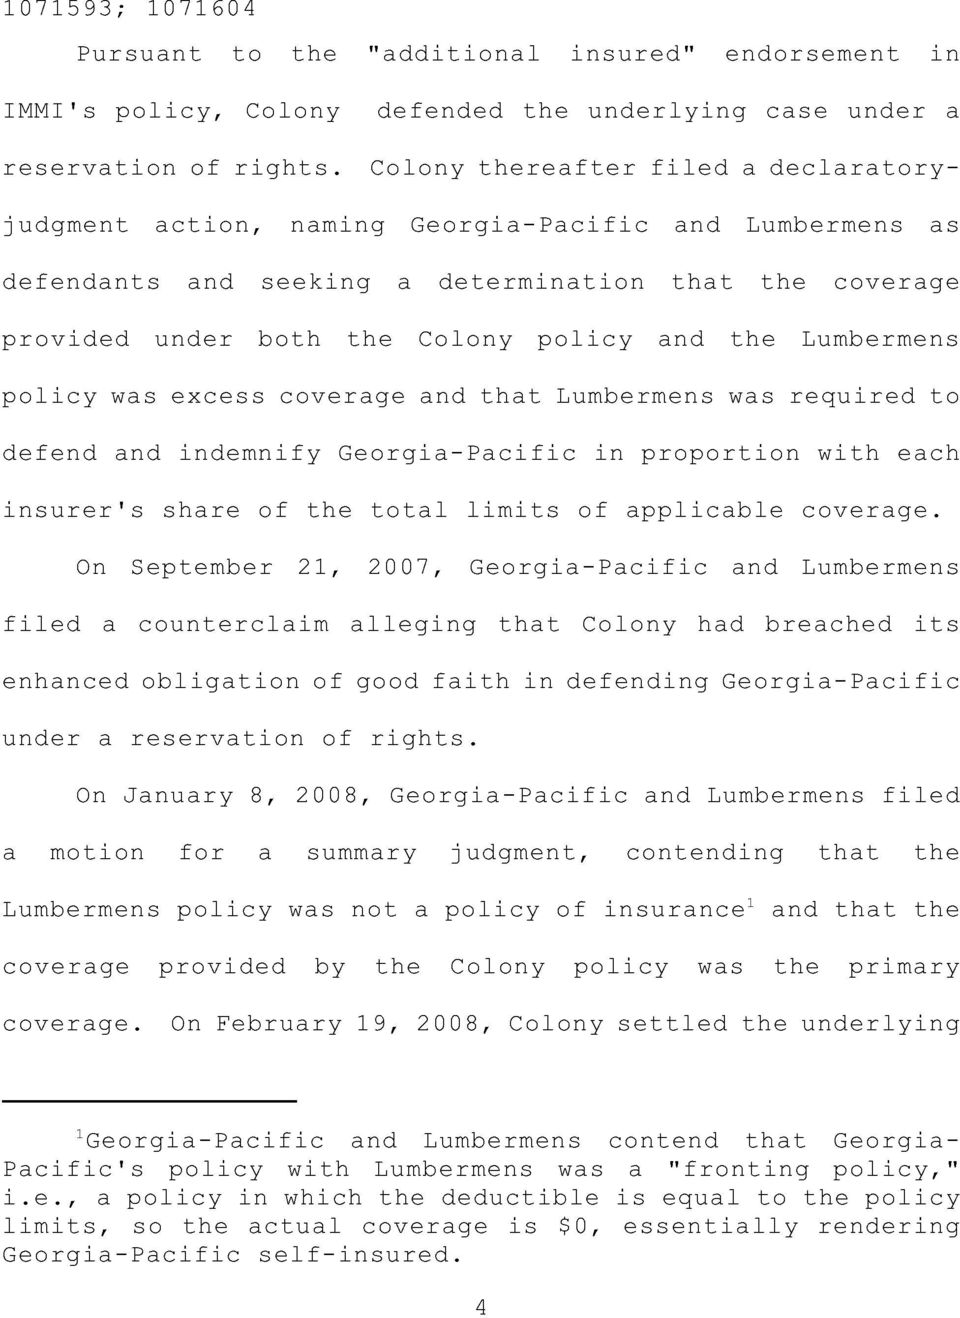 the Lumbermens policy was excess coverage and that Lumbermens was required to defend and indemnify Georgia-Pacific in proportion with each insurer's share of the total limits of applicable coverage.